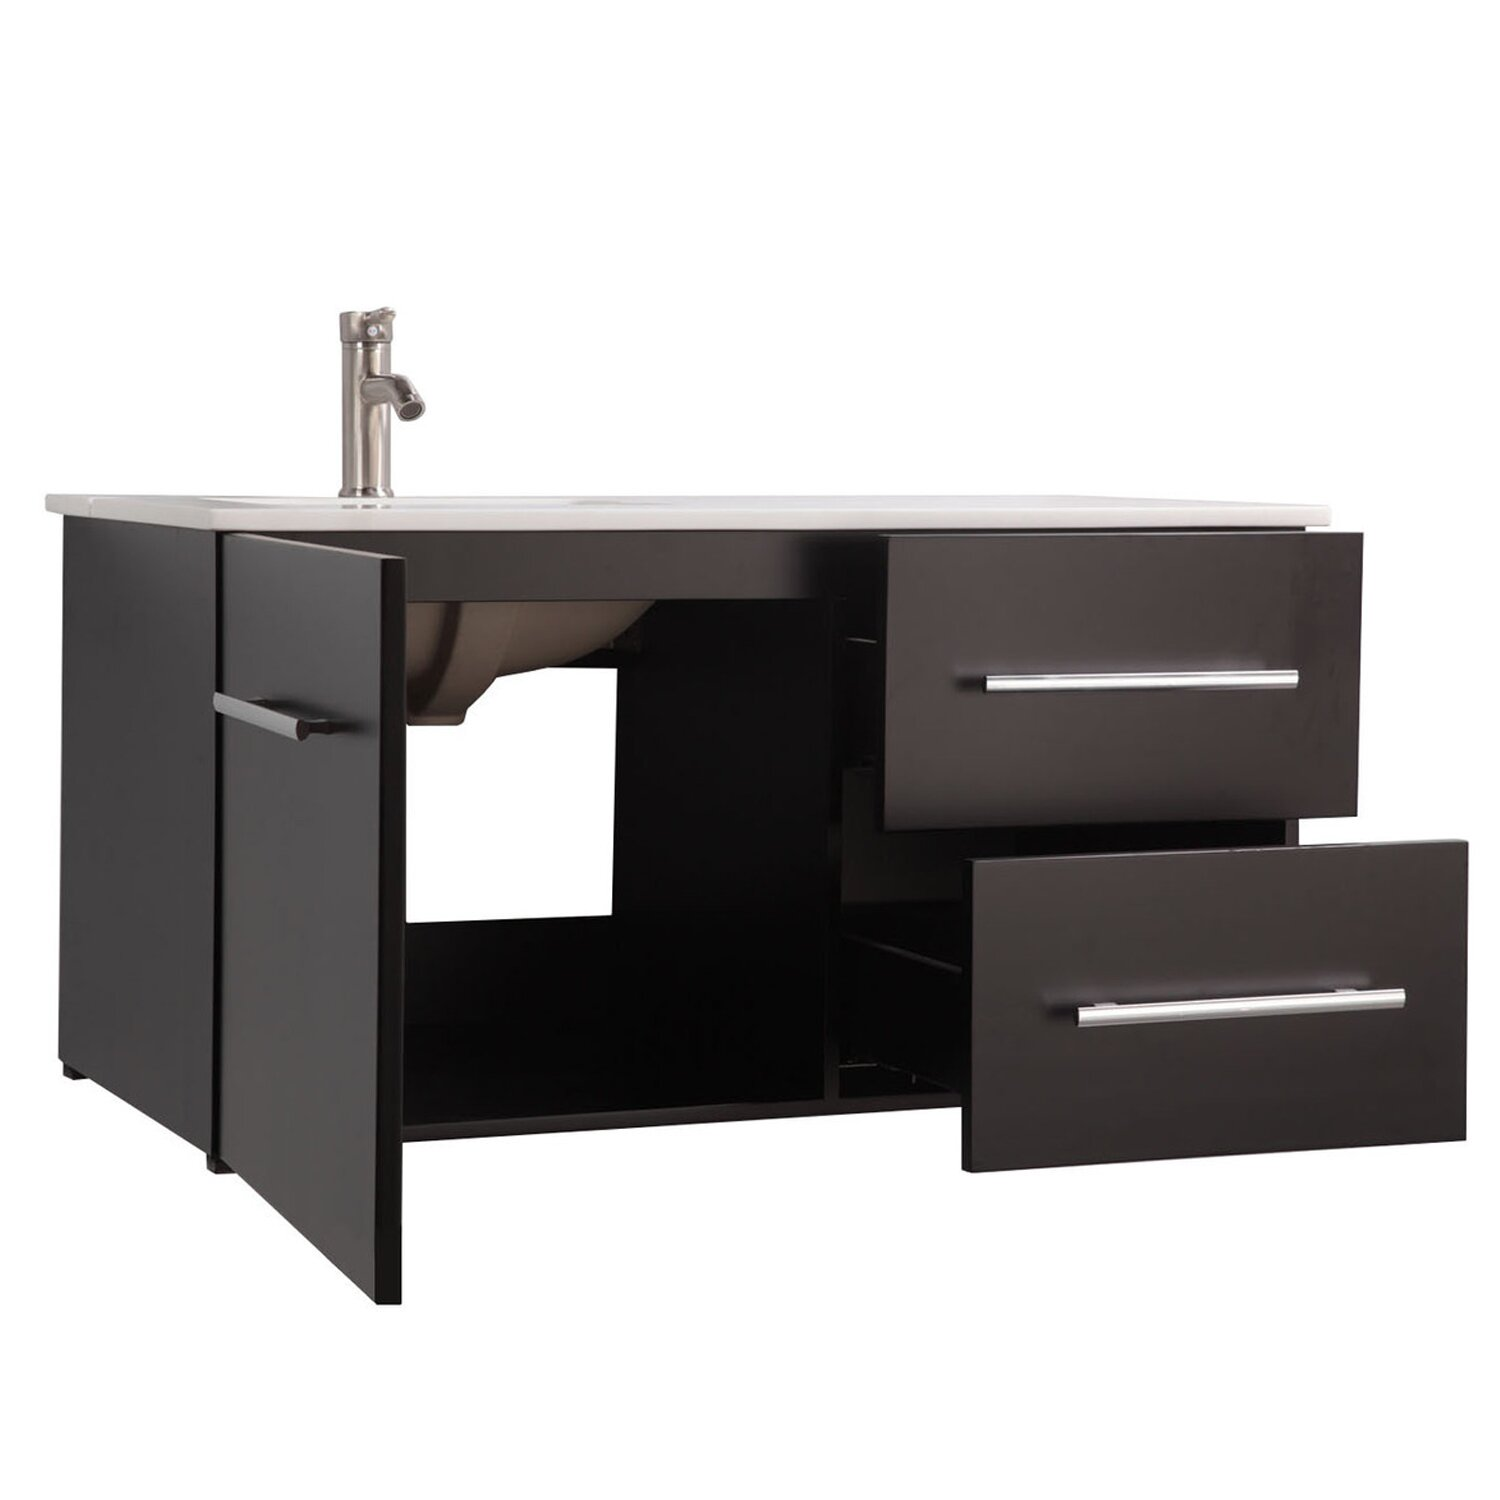 Mtdvanities nepal 41 single sink wall mounted bathroom for Kitchen sink in nepal